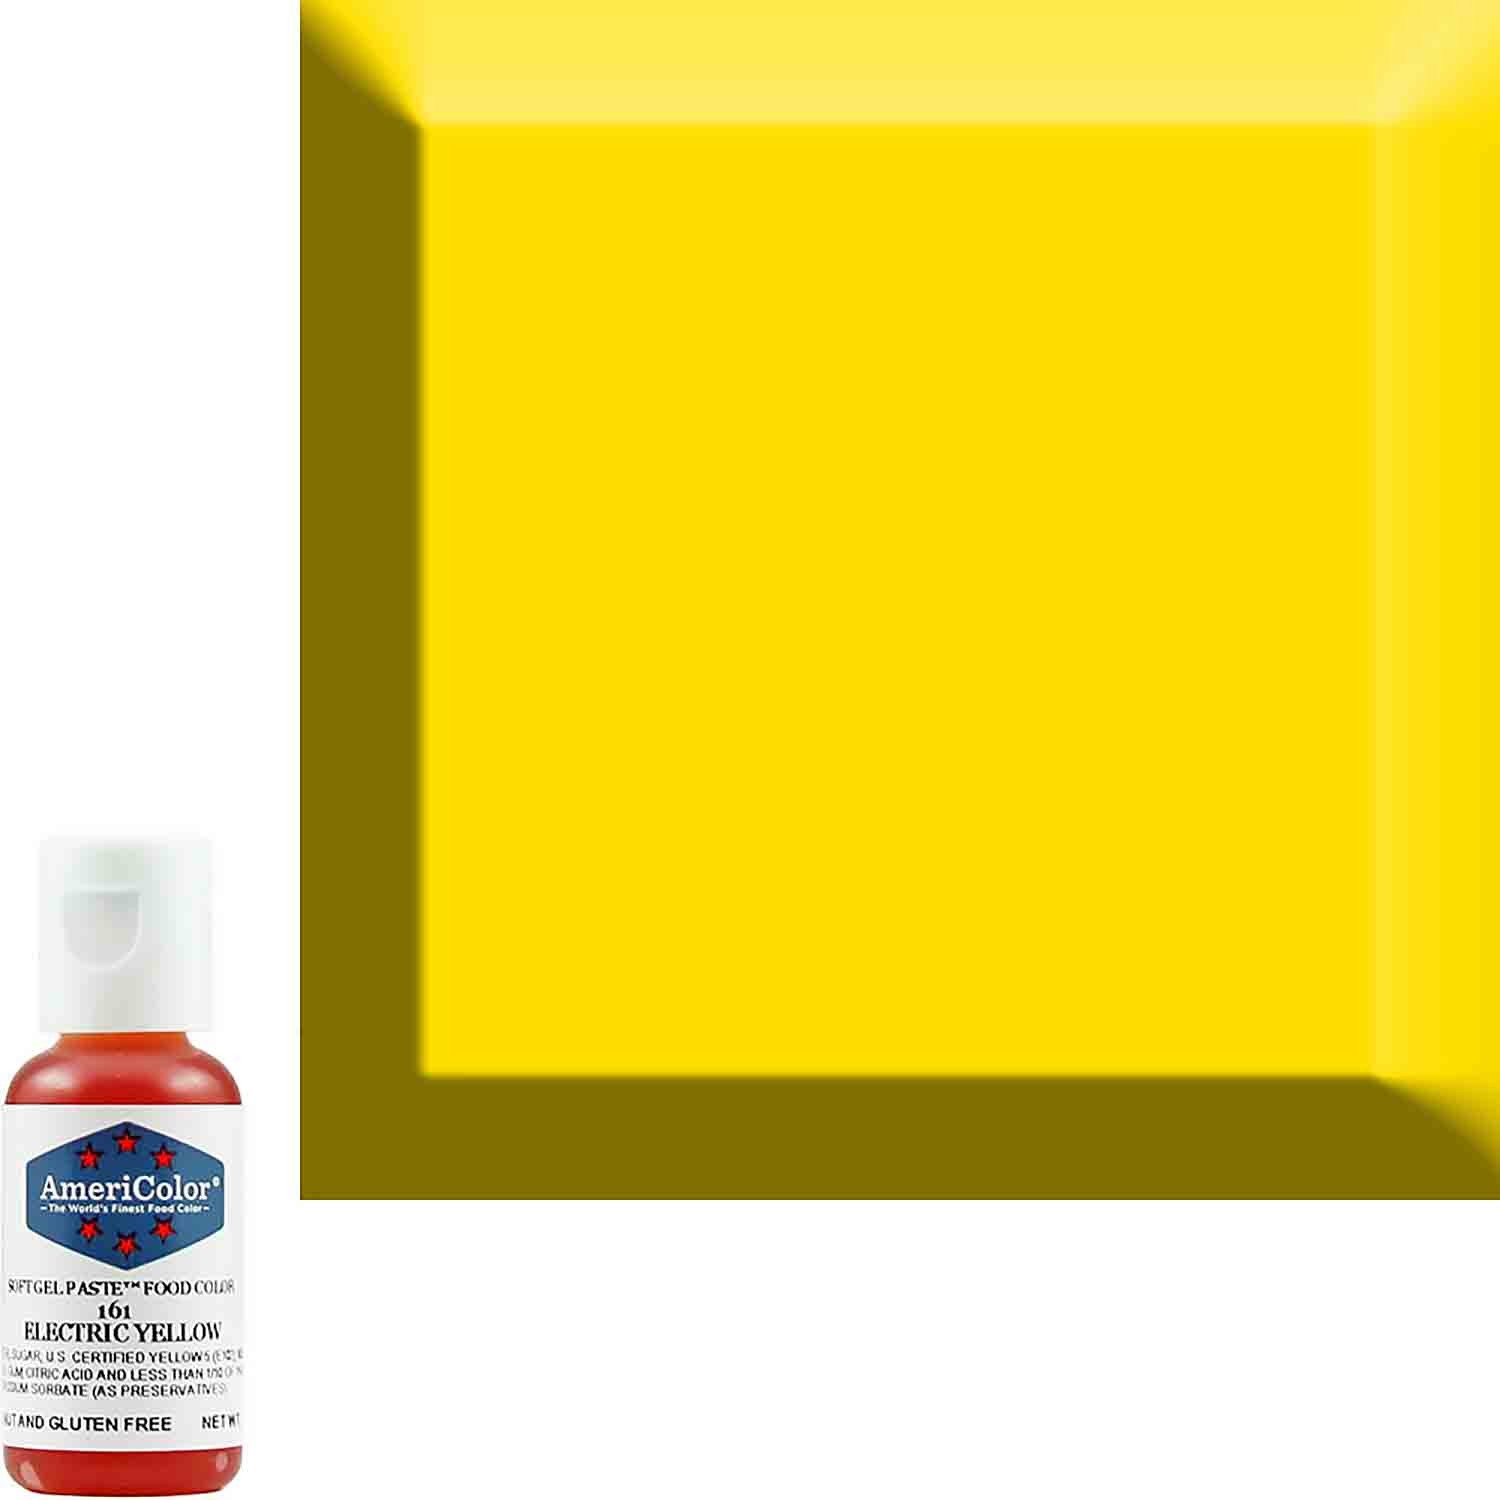 Neon/Electric Yellow AmeriColor® Soft Gel Paste™ Food Color